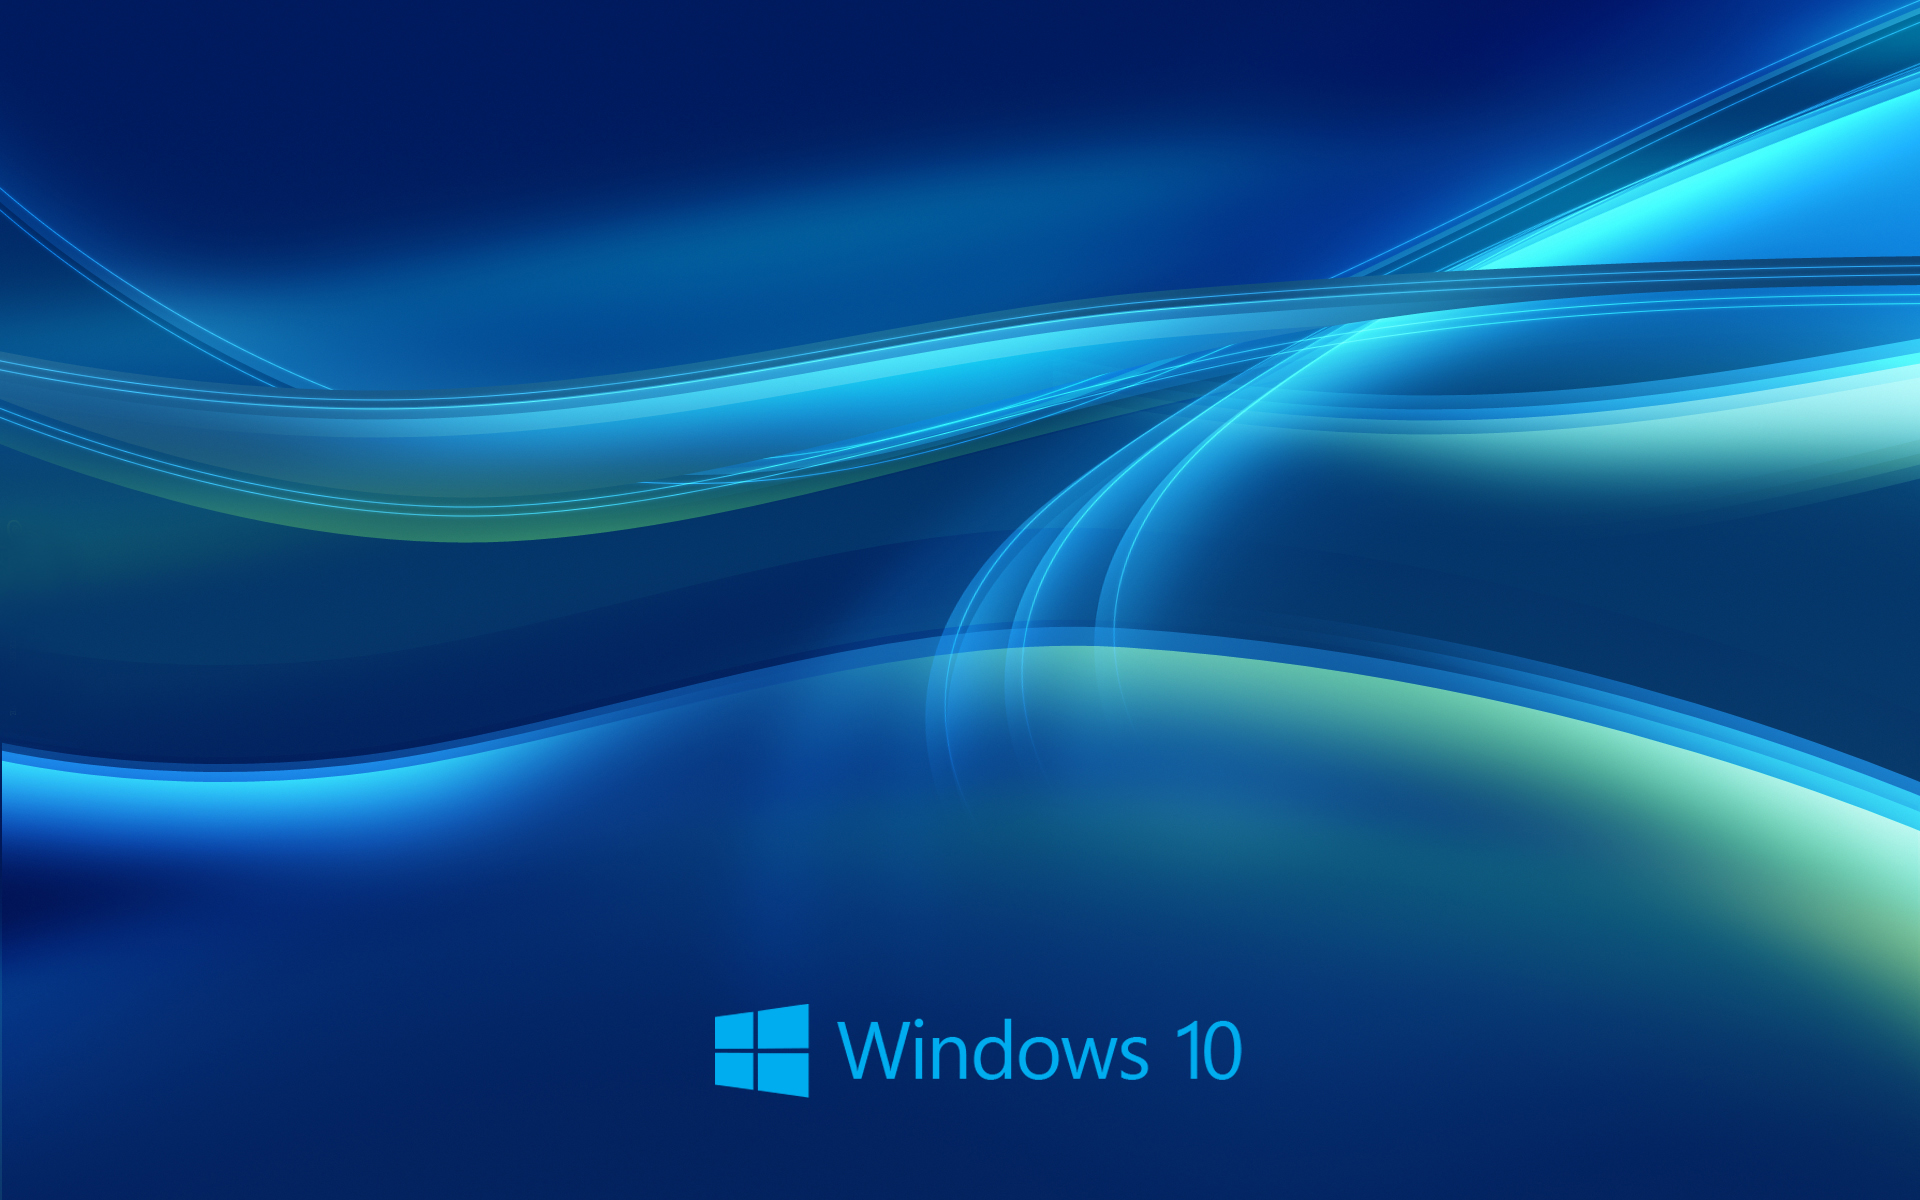 windows 10 wallpapers pictures images